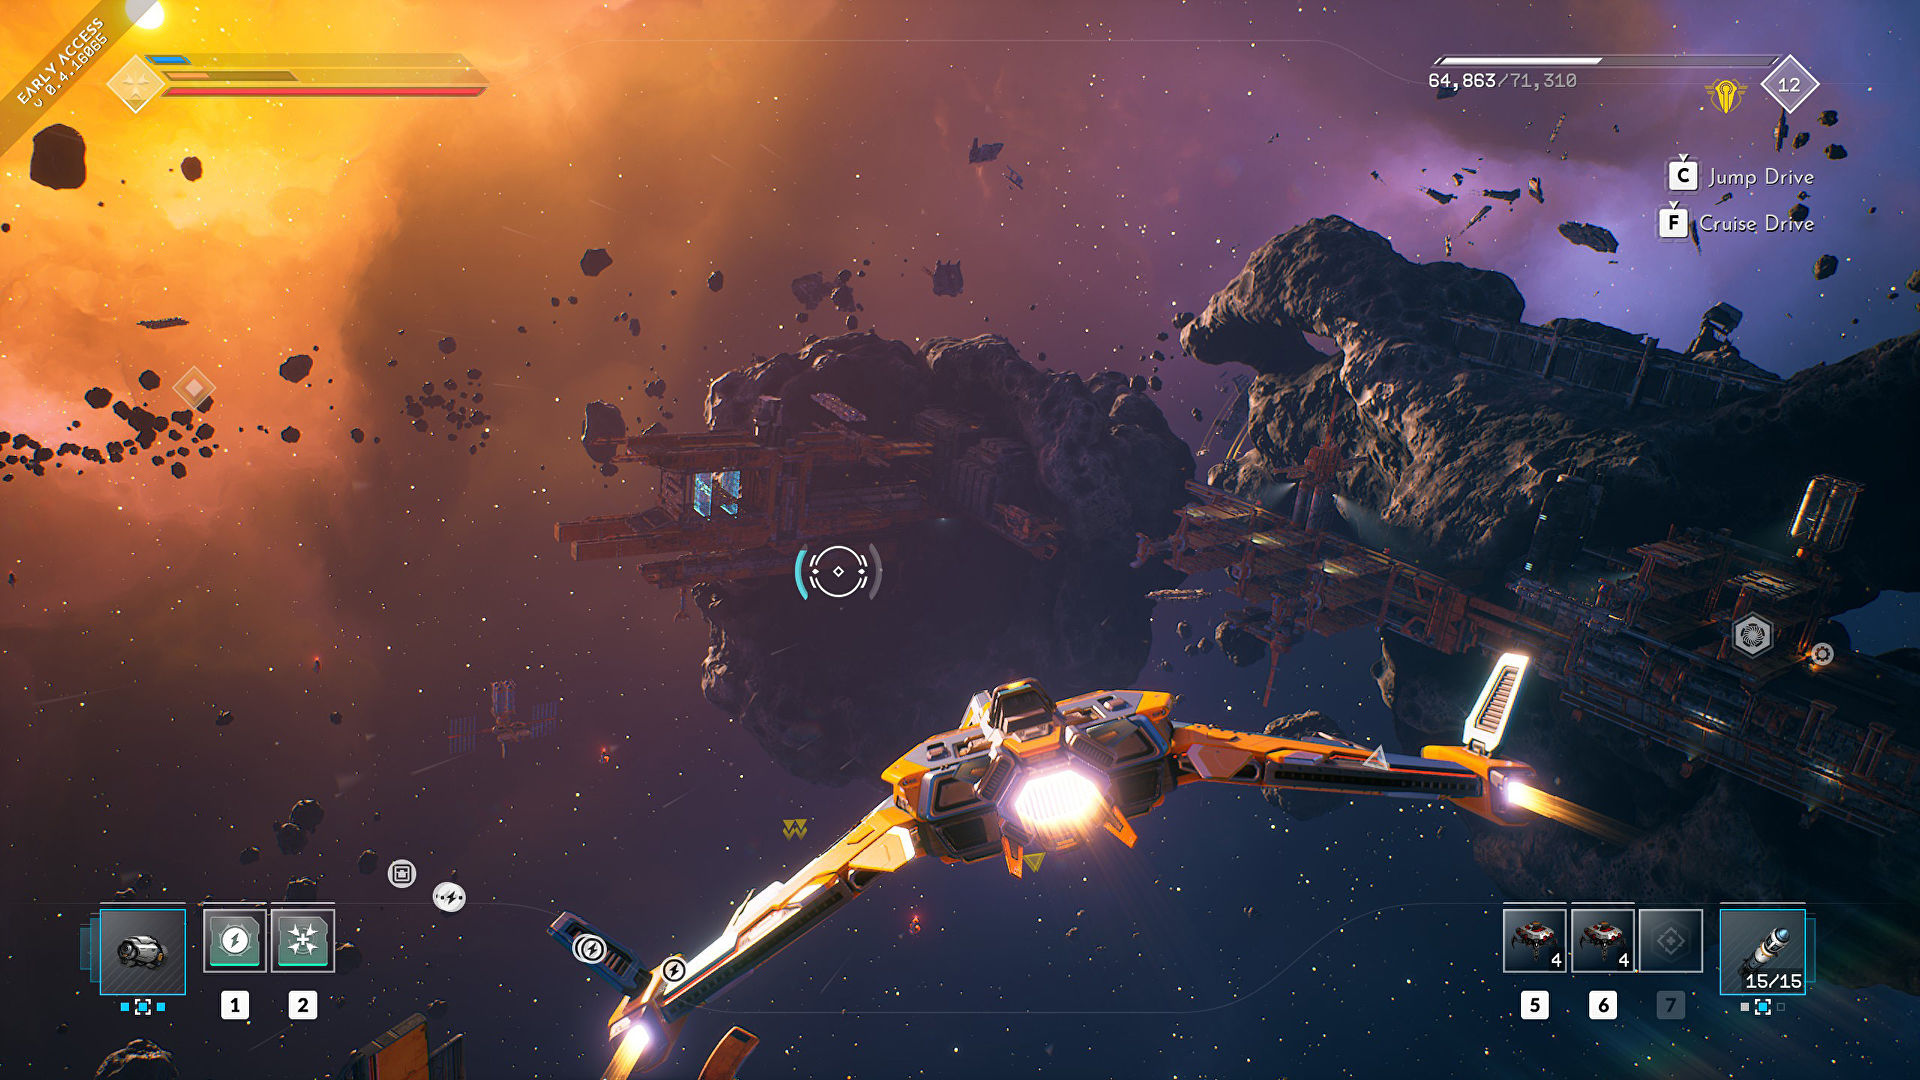 Spaceship looter shooter Everspace 2 has launched into early access